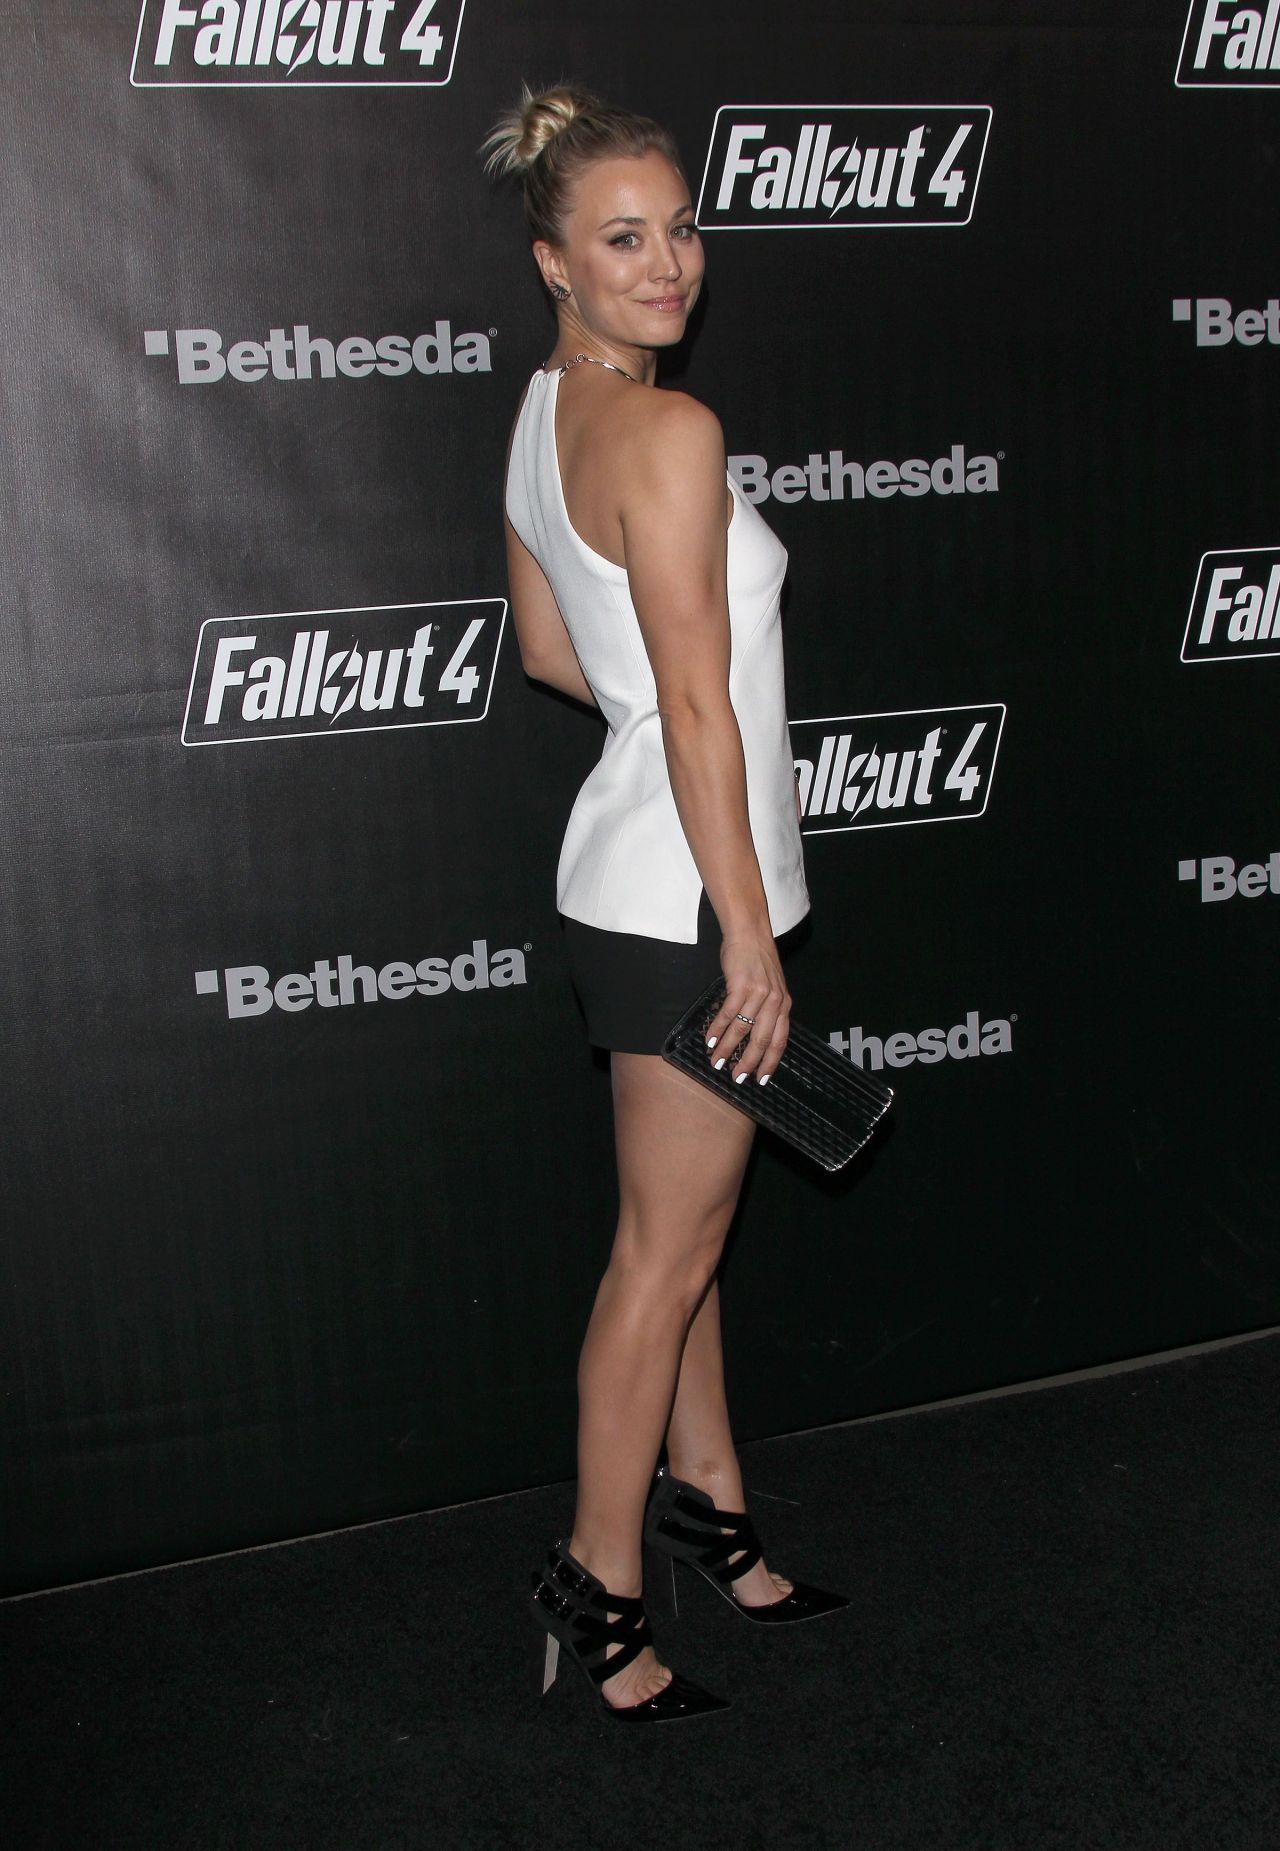 Kaley Cuoco Fallout 4 Video Game Launch Event In Los Angeles